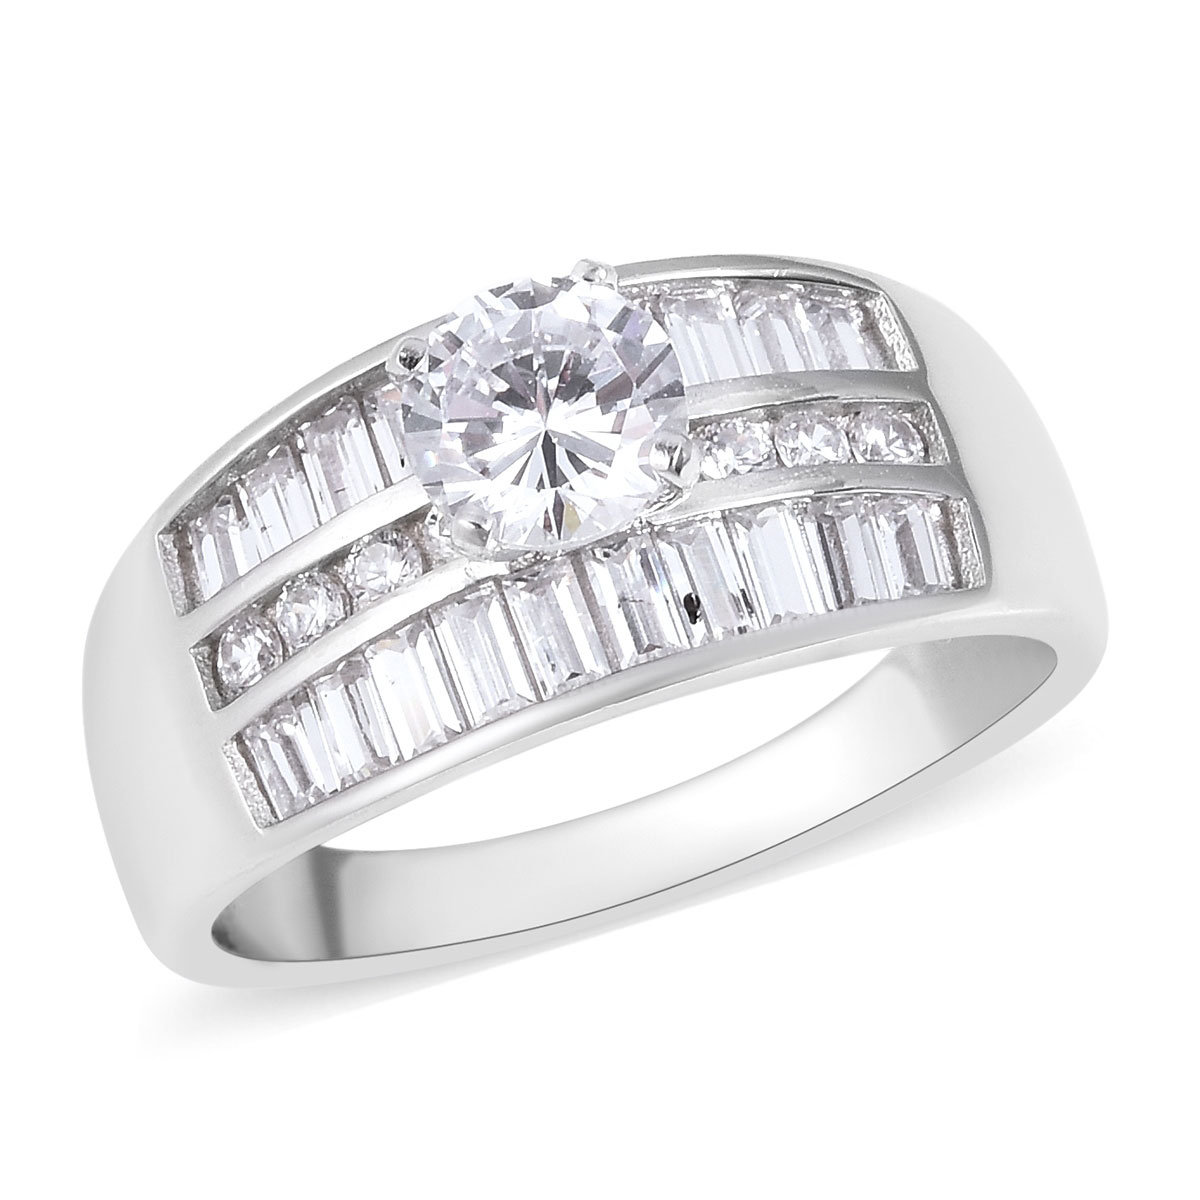 LUSTRO STELLA CZ Ring in Sterling Silver (Size 6.0) 2.73 ctw